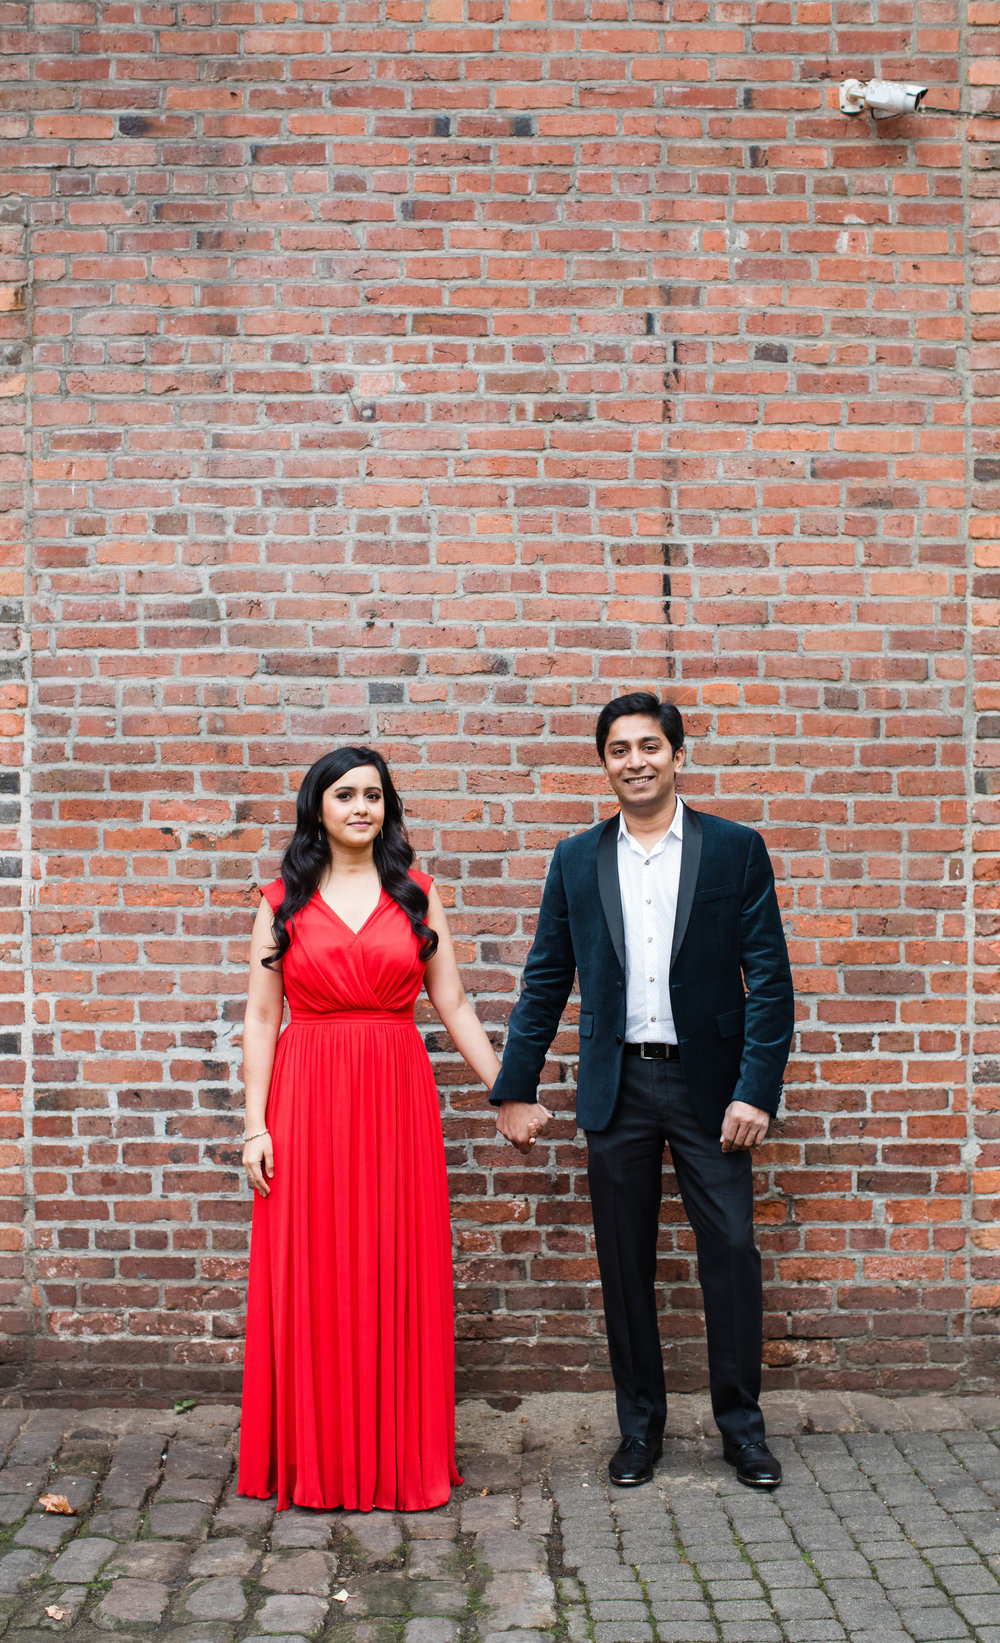 Sushat+Nancy_Engagement_Pioneer+Square_Sculpture+Park_Seattle_Oct2016_APW75.jpg